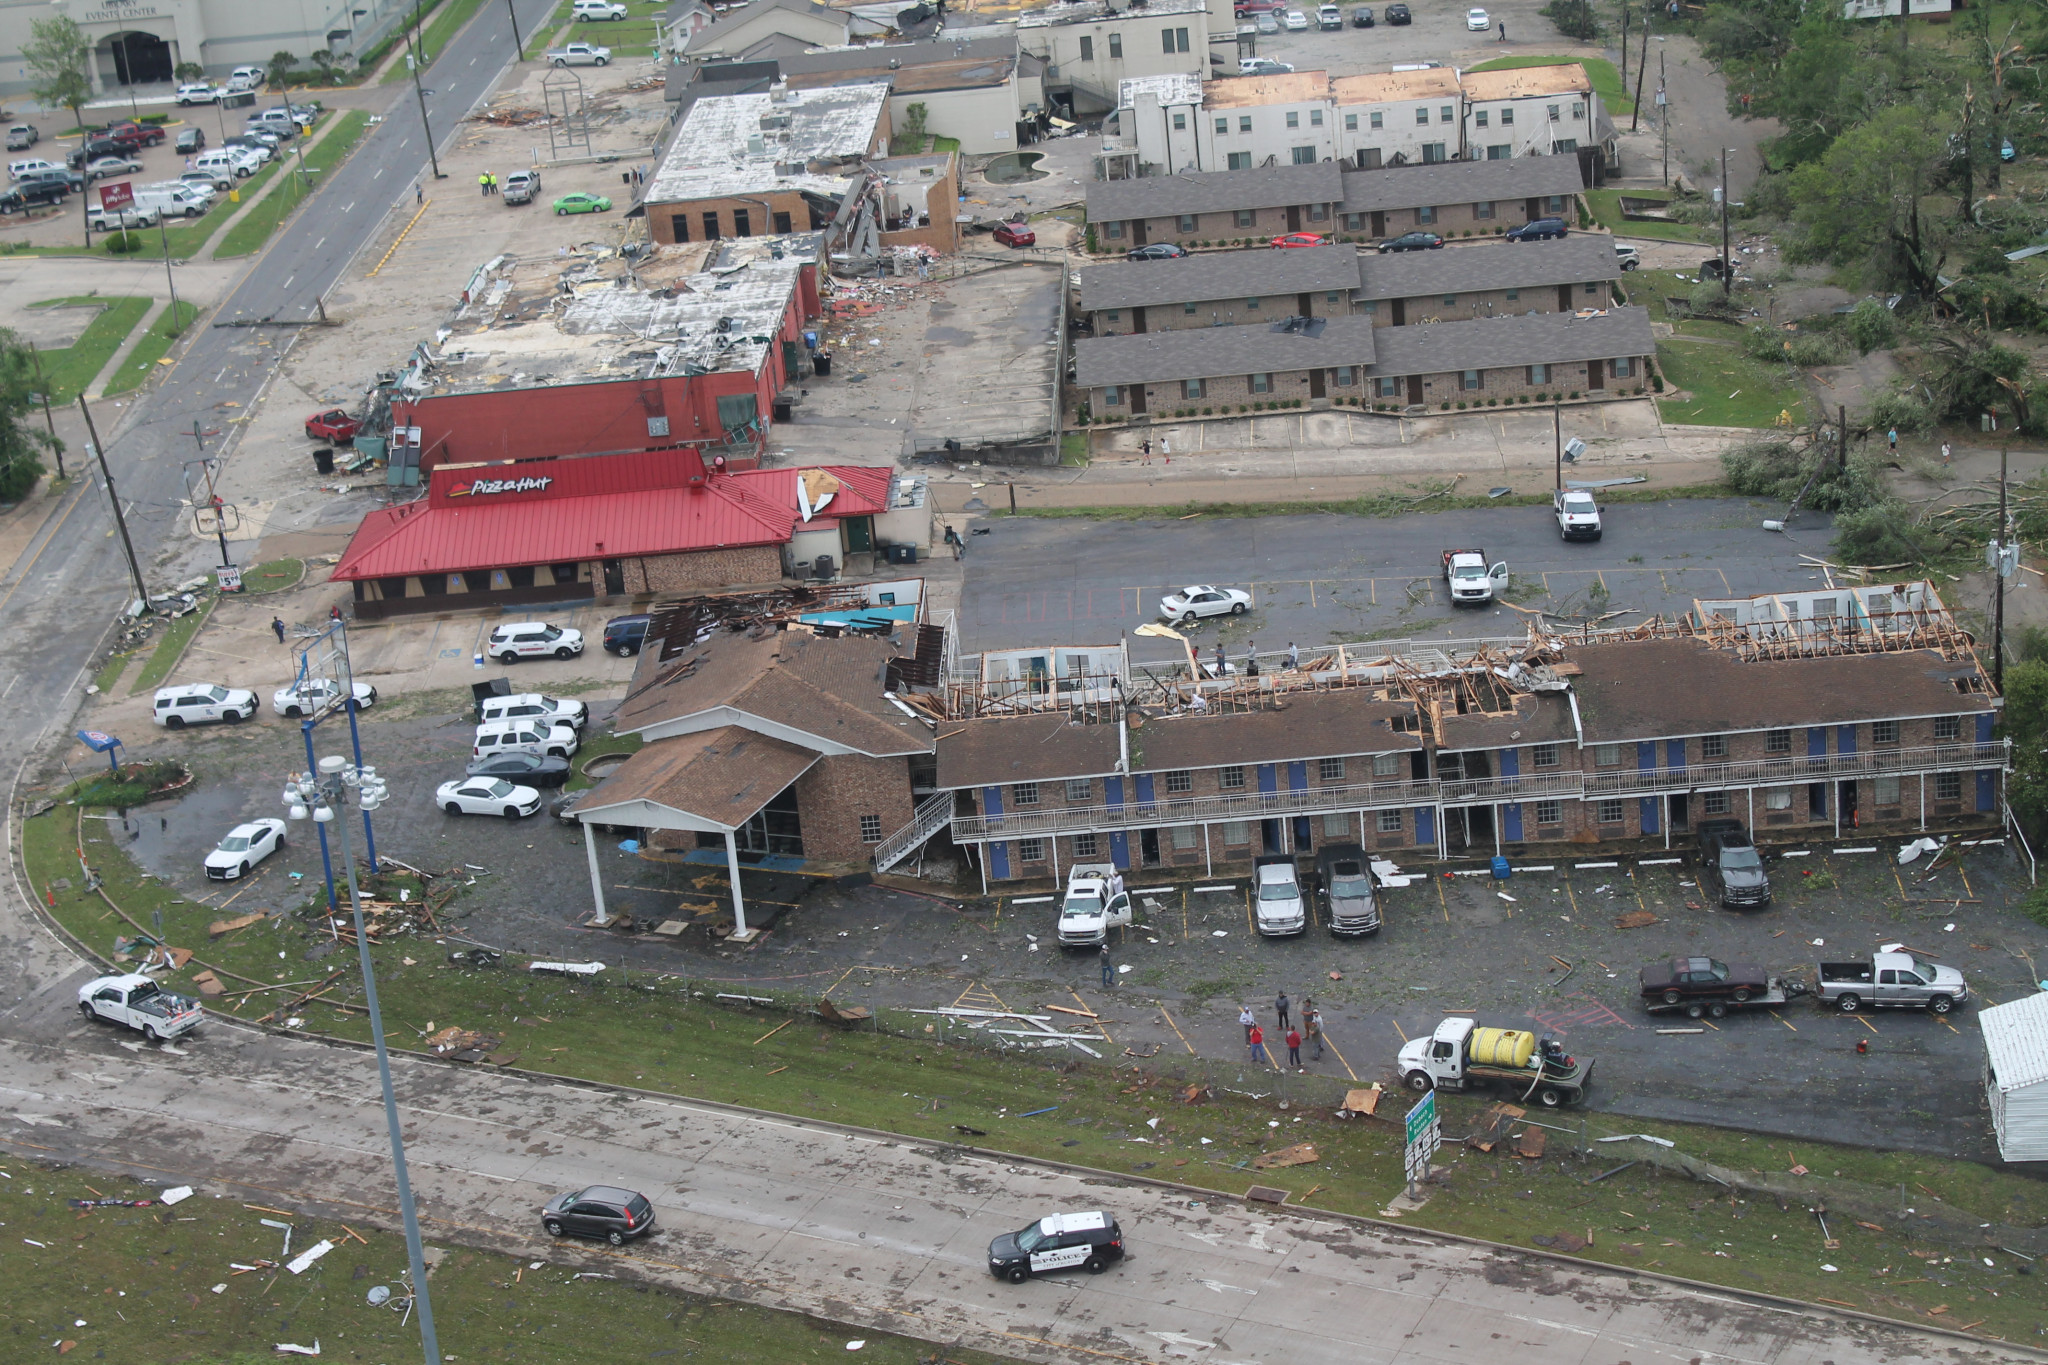 An aerial view of the tornado damage to America's Best Value Inn, Pizza Hut and surrounding buildings last year.